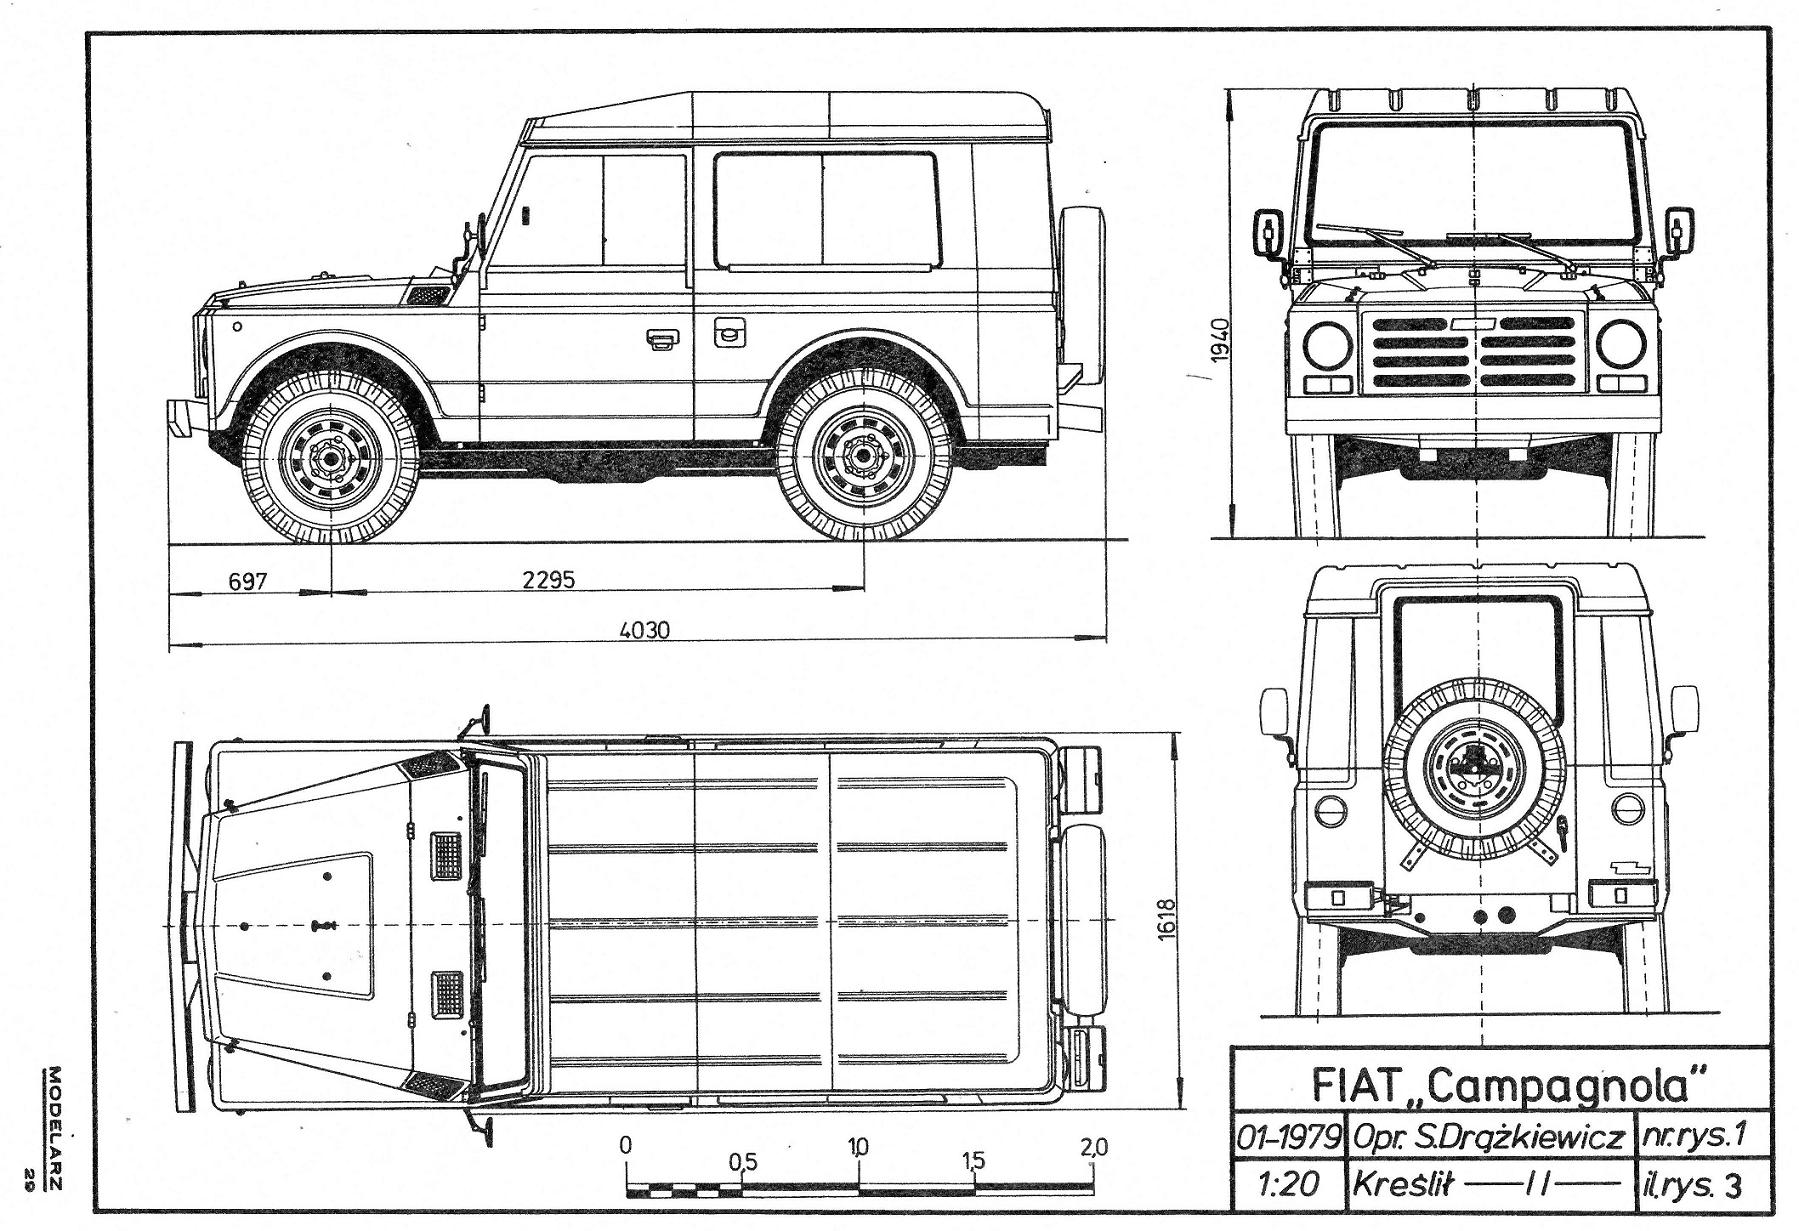 Fiat Nuova Campagnola Blueprint - Download free blueprint for 3D ...